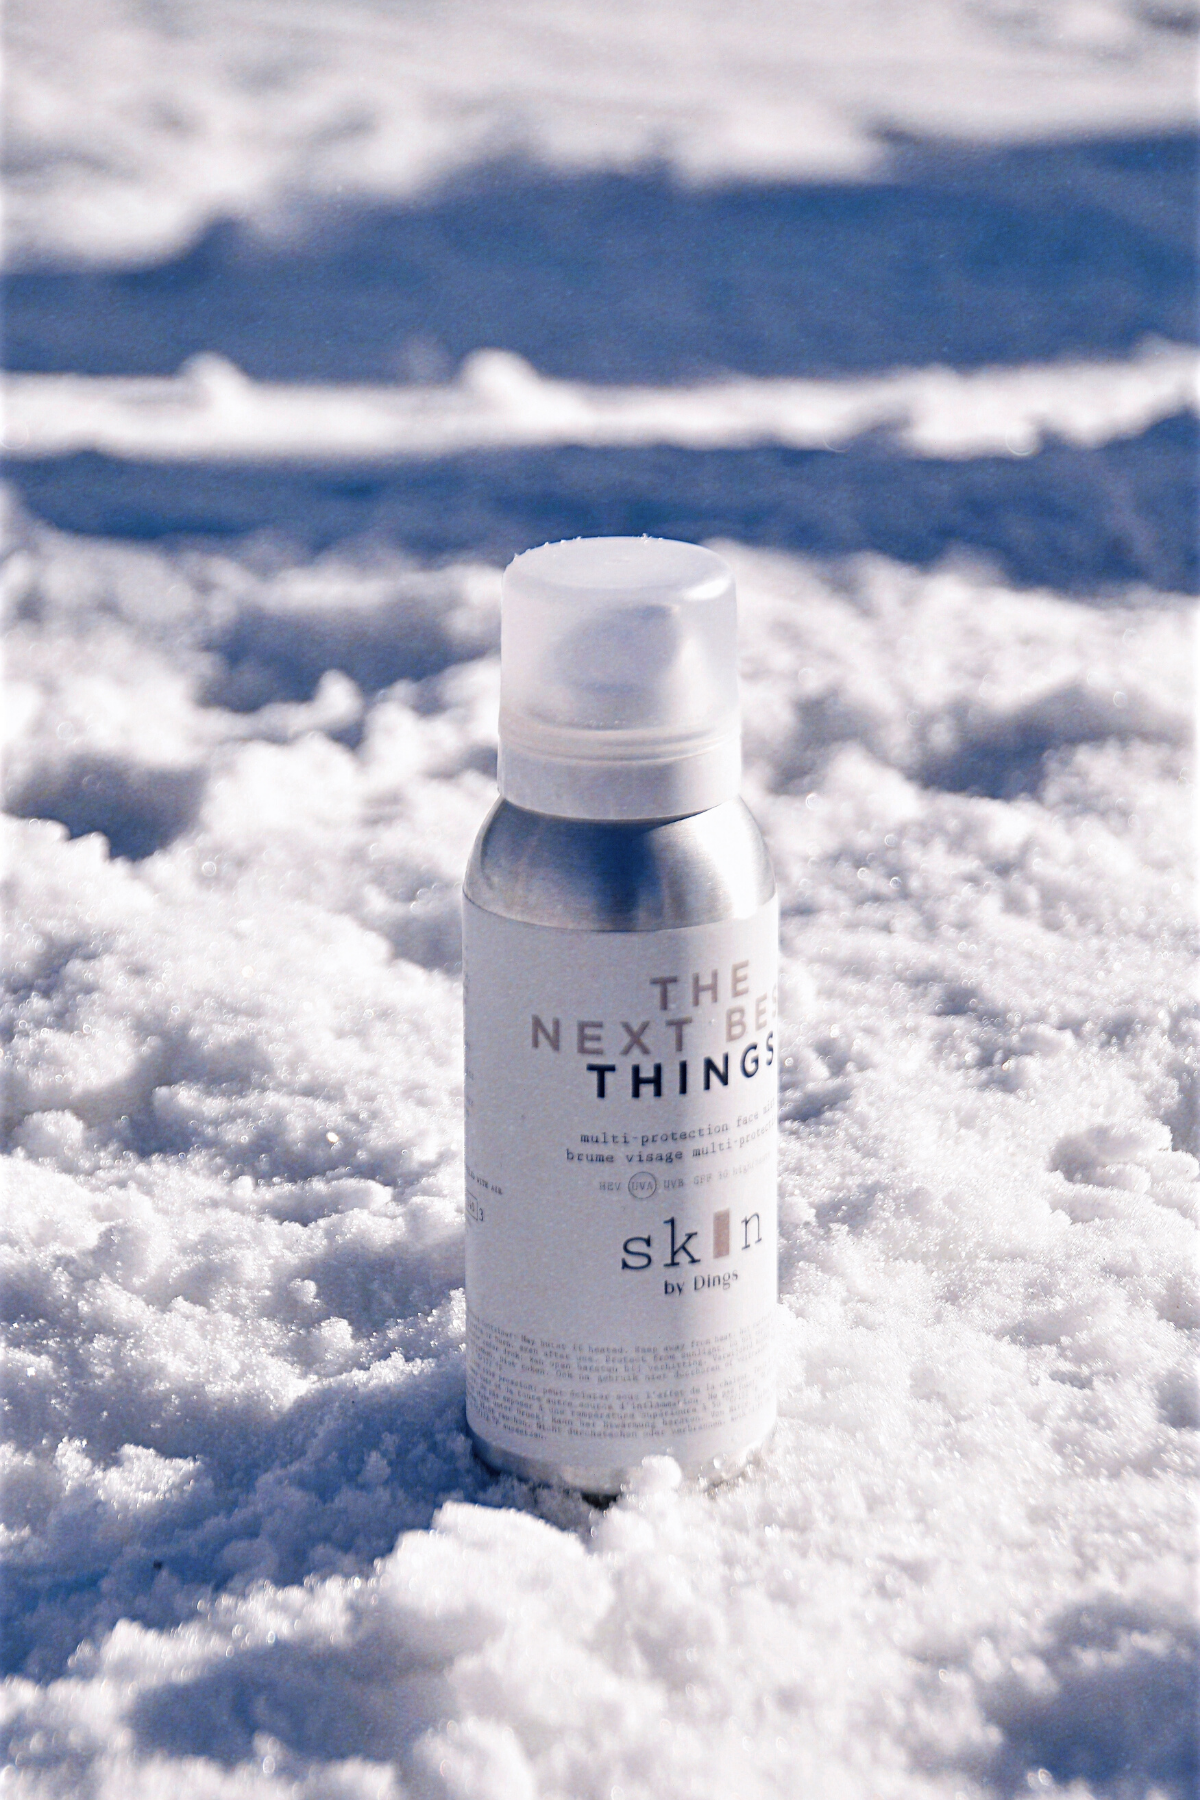 THE NEXT BEST THINGS - multi protection face mist SPF 30-3